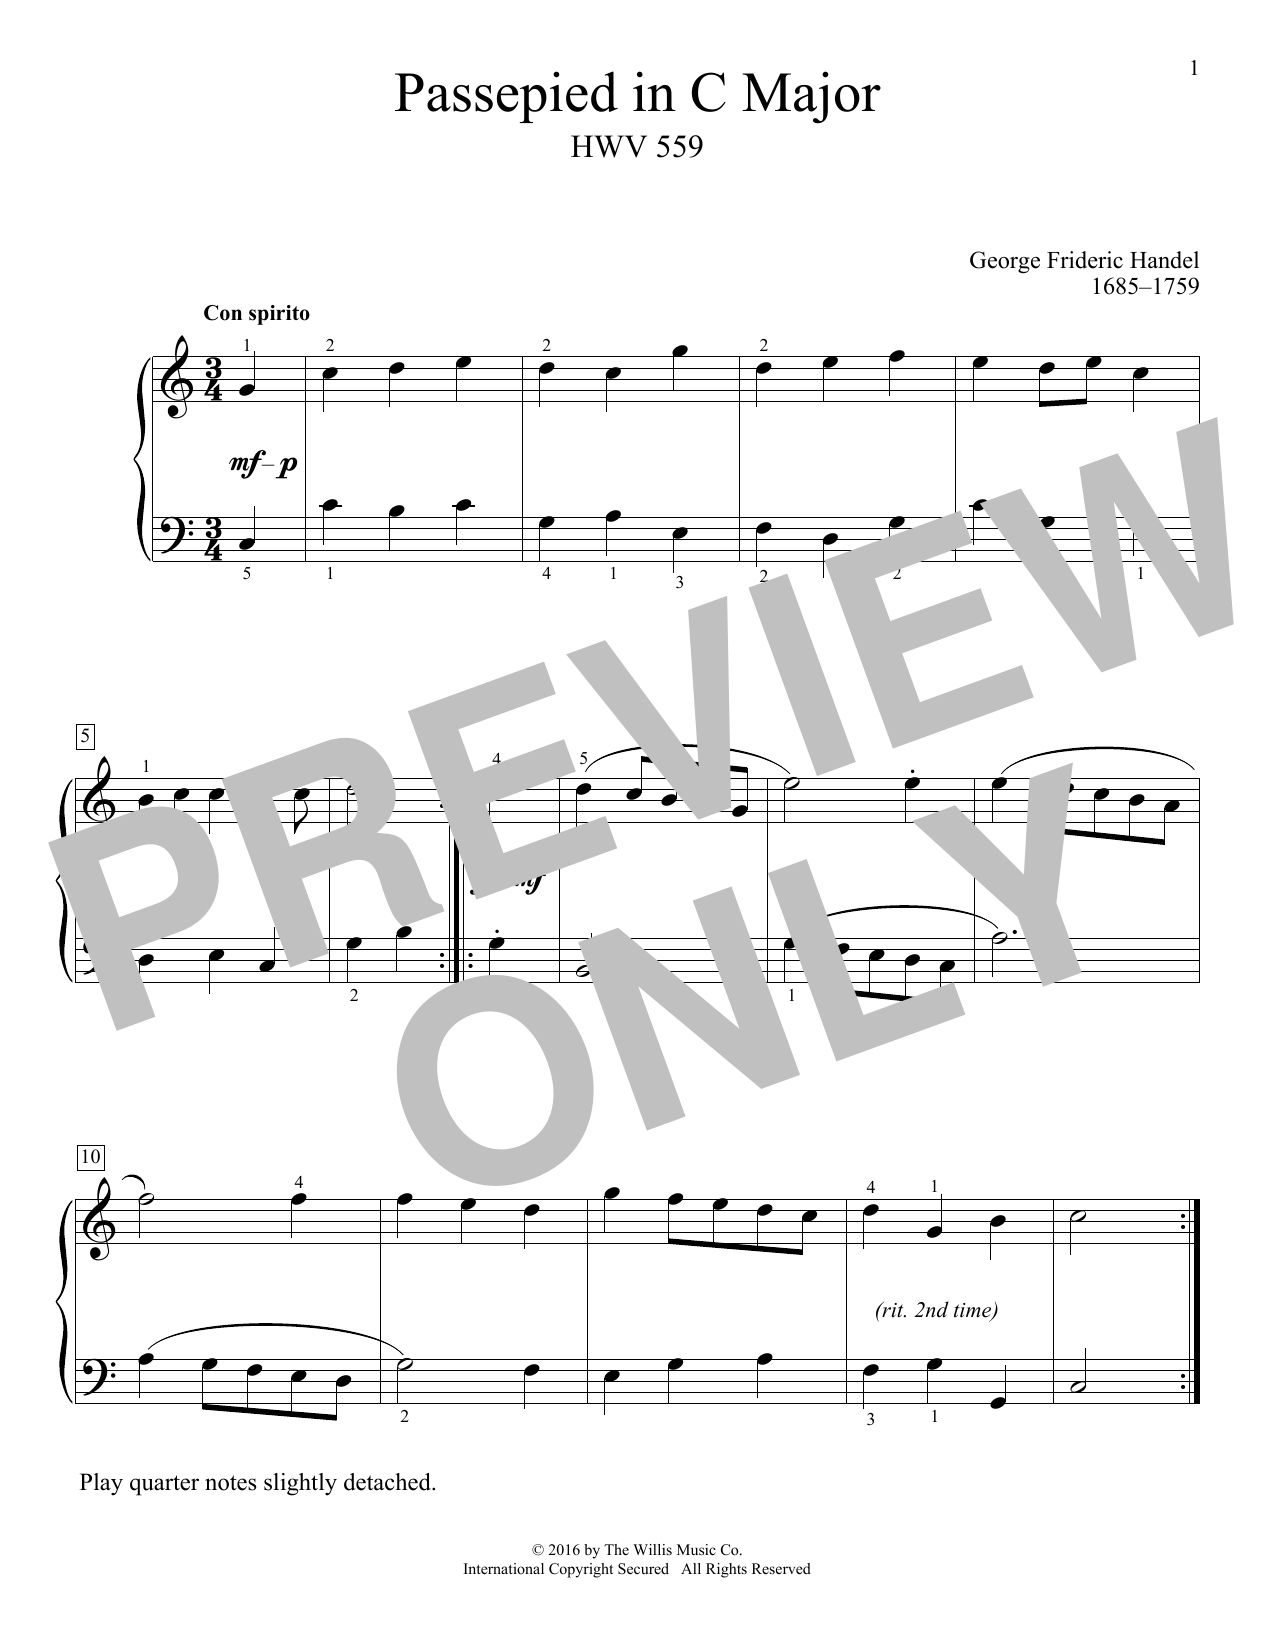 Passepied In C Major, HWV 559 Sheet Music